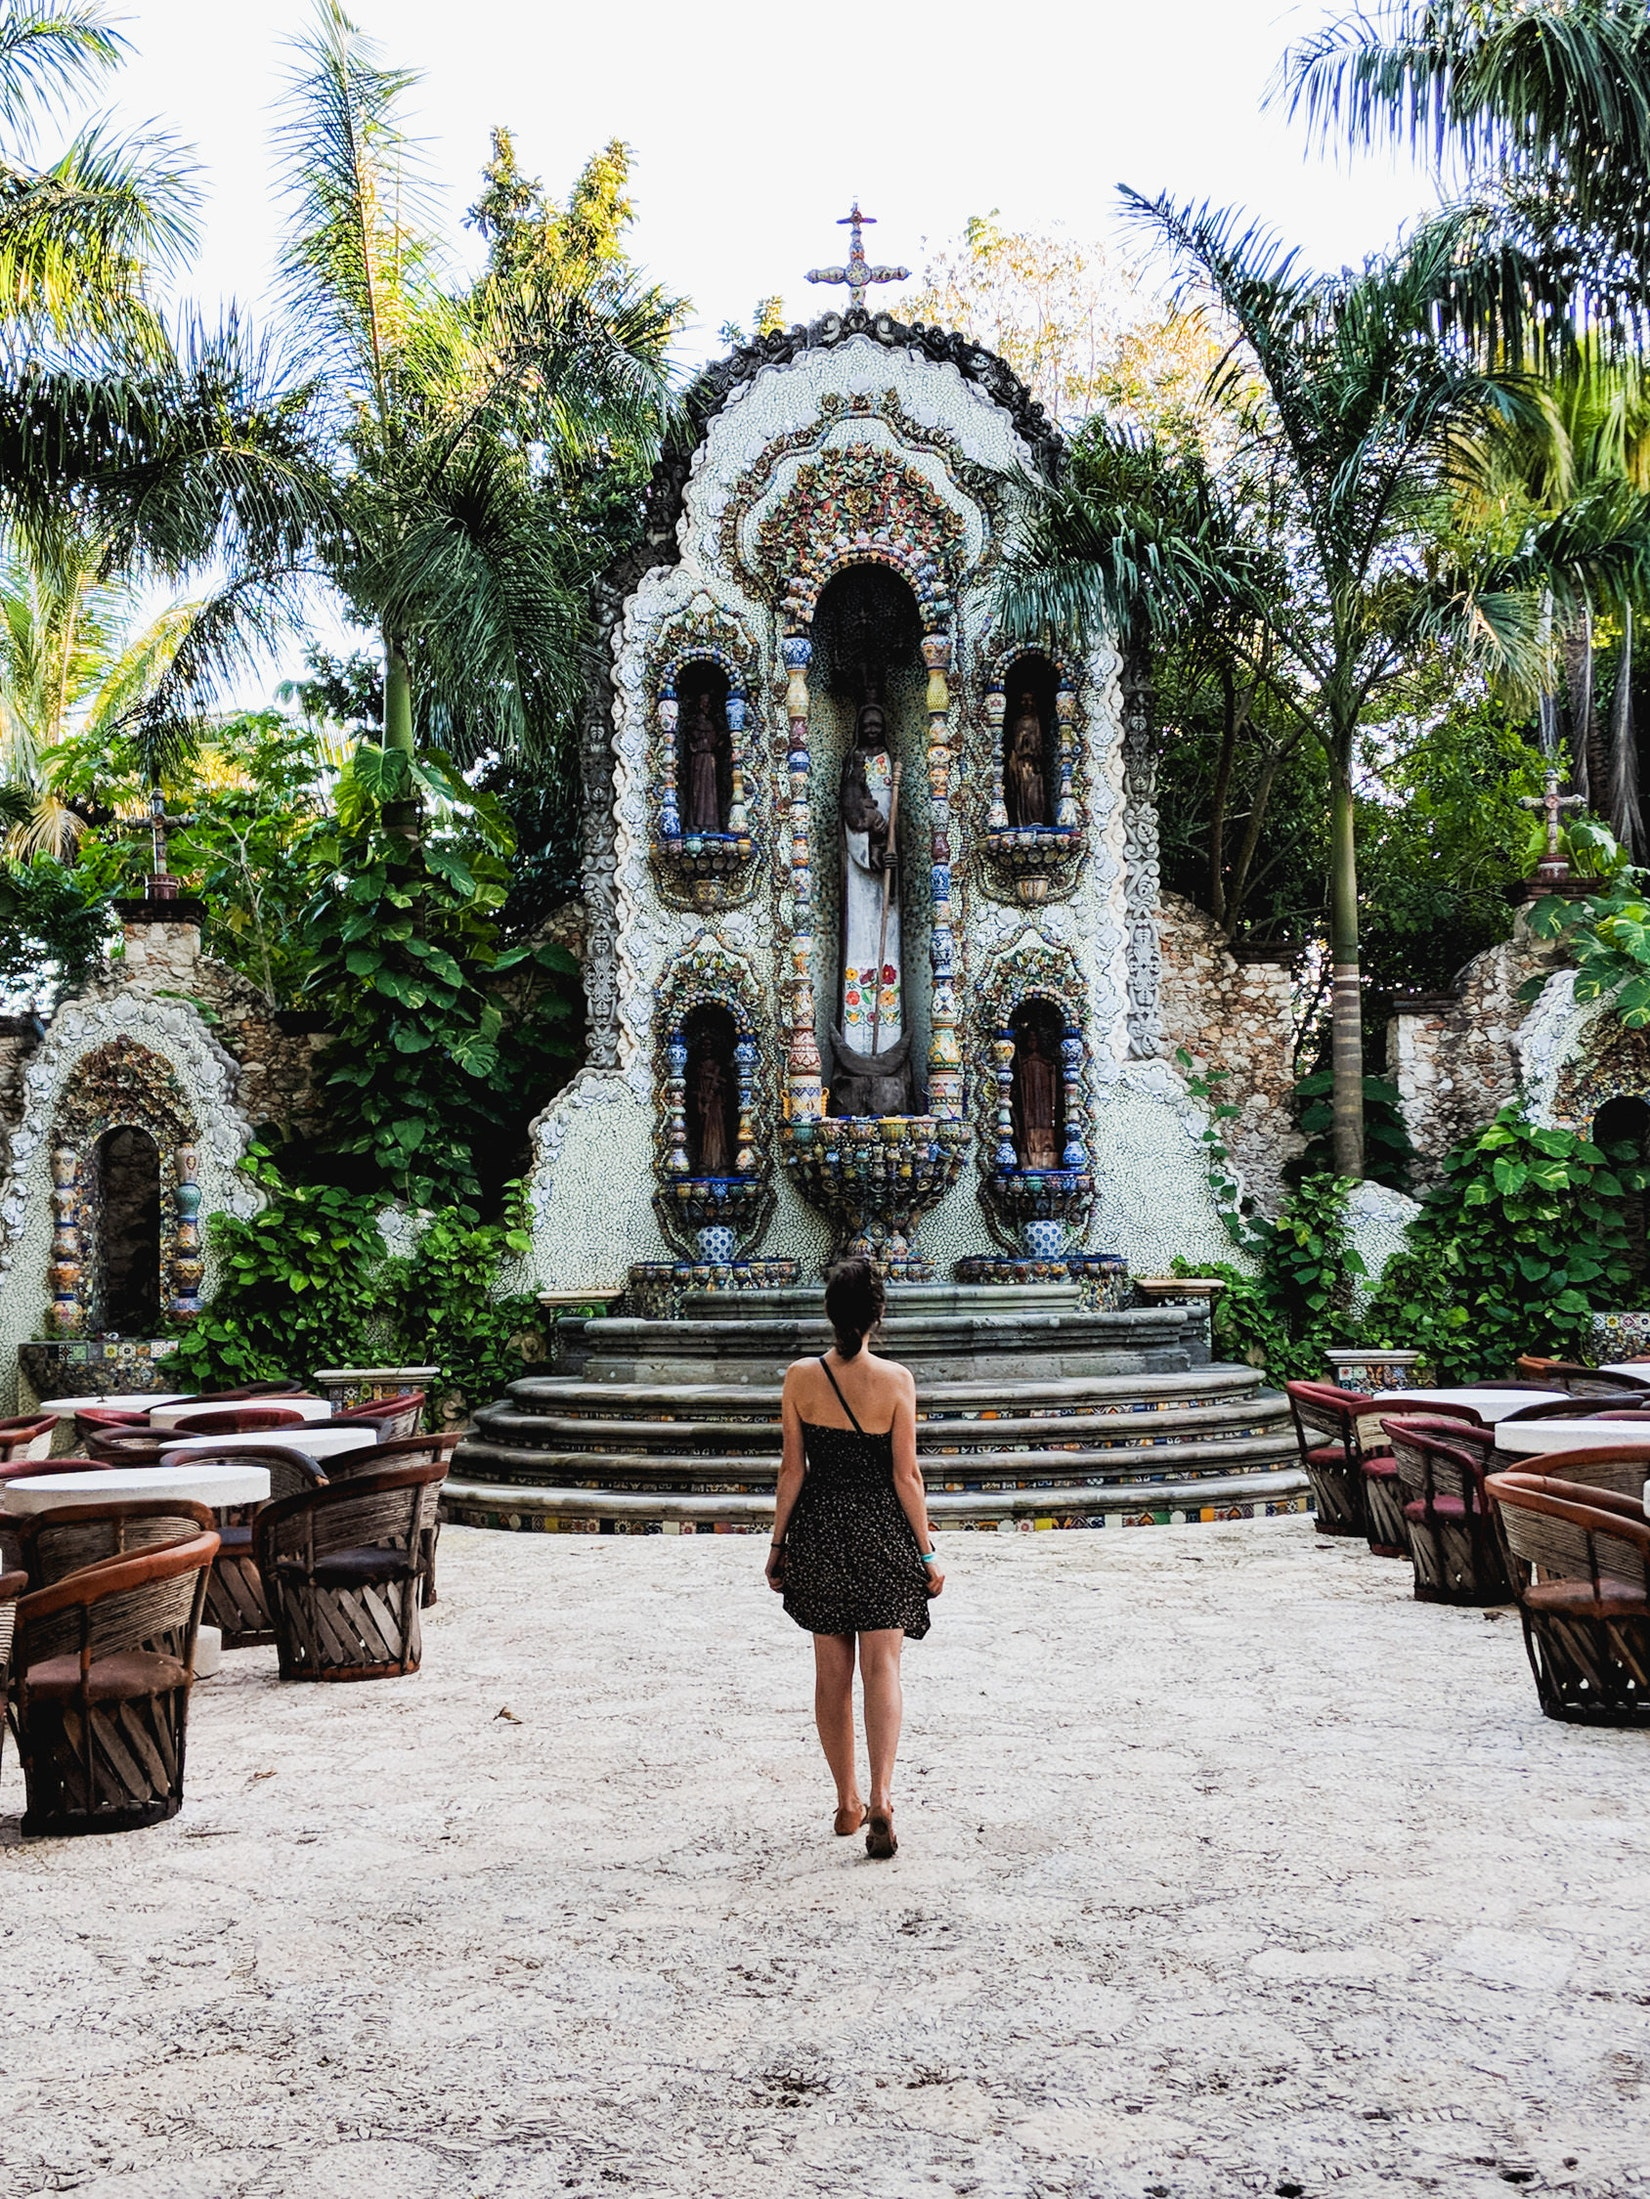 Becca walking in front of a colorful fountain in Valladolid, Mexico